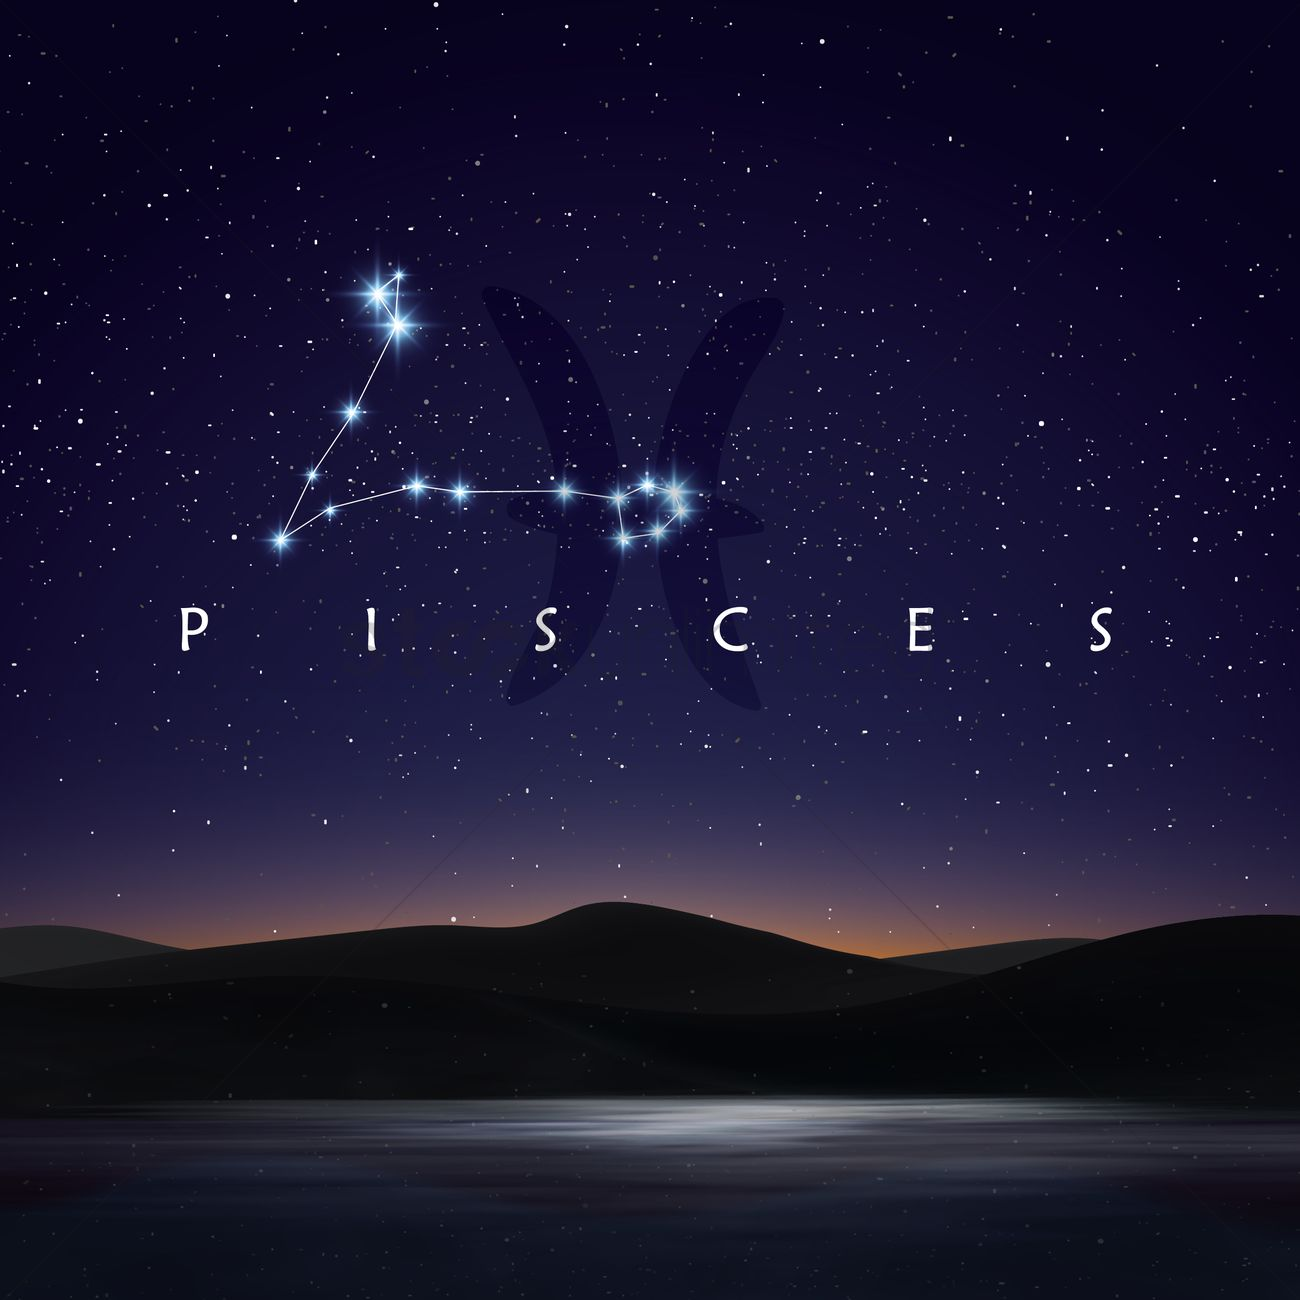 Pisces constellation Vector Image - 1964125 | StockUnlimited